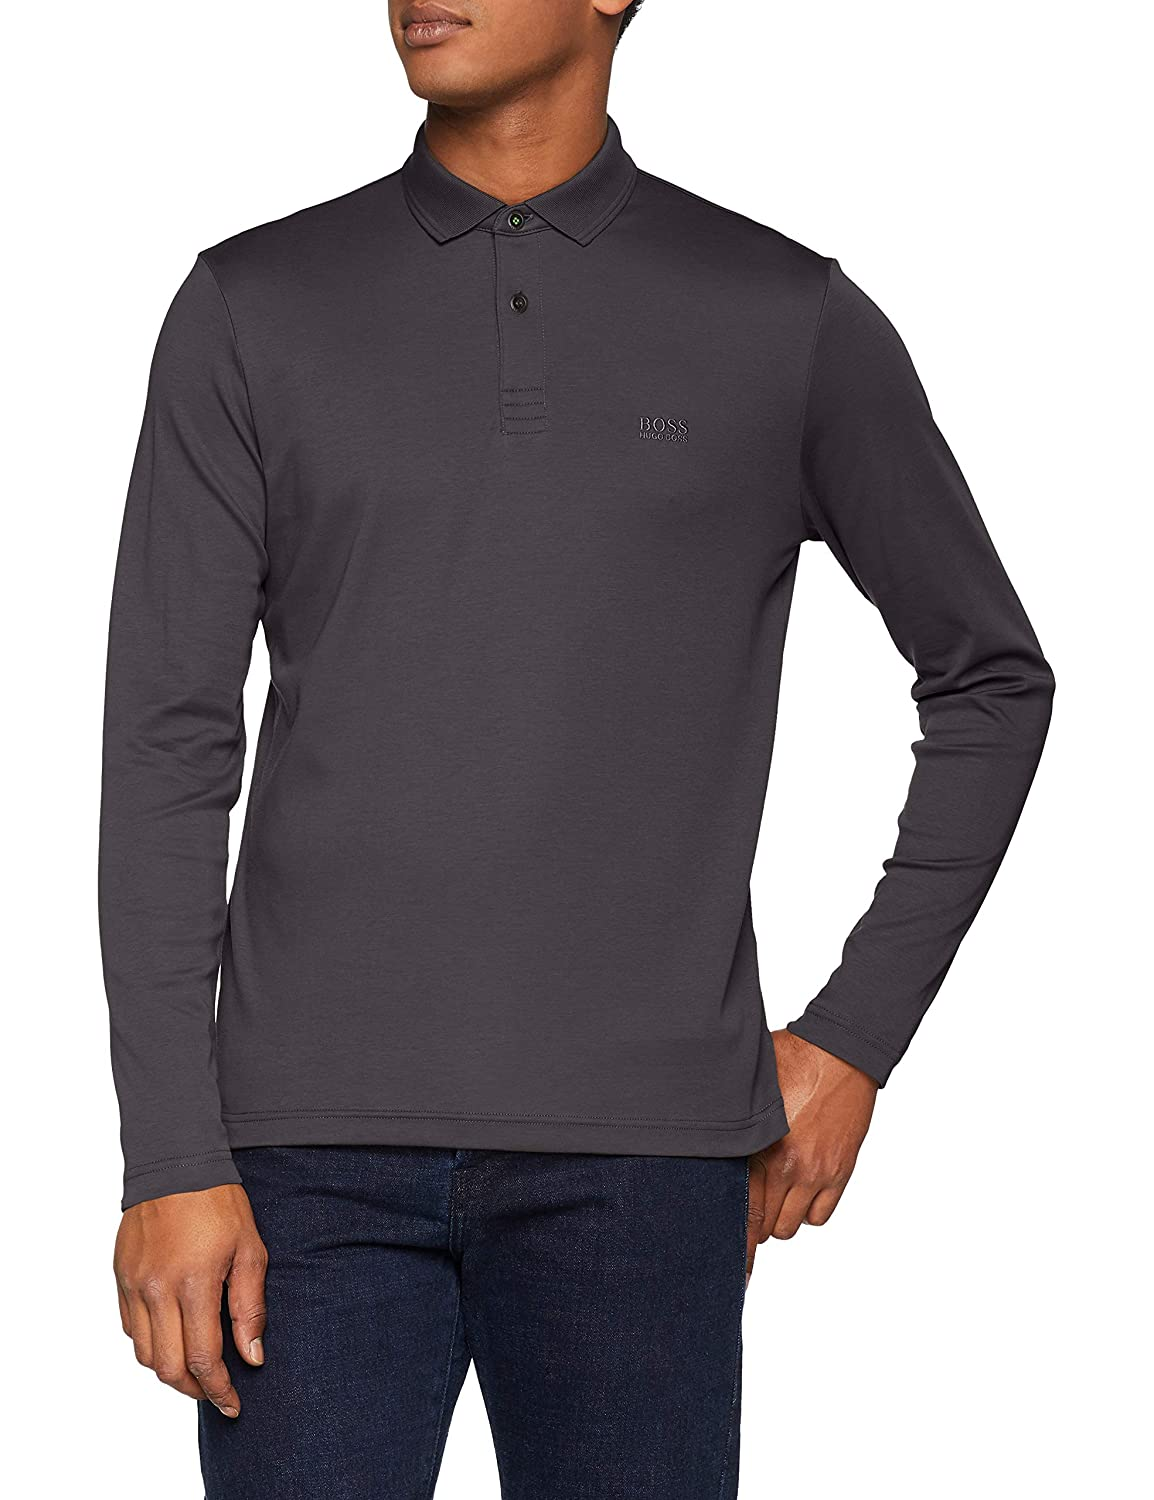 gris (gris 020) S BOSS Pirol Polo Homme